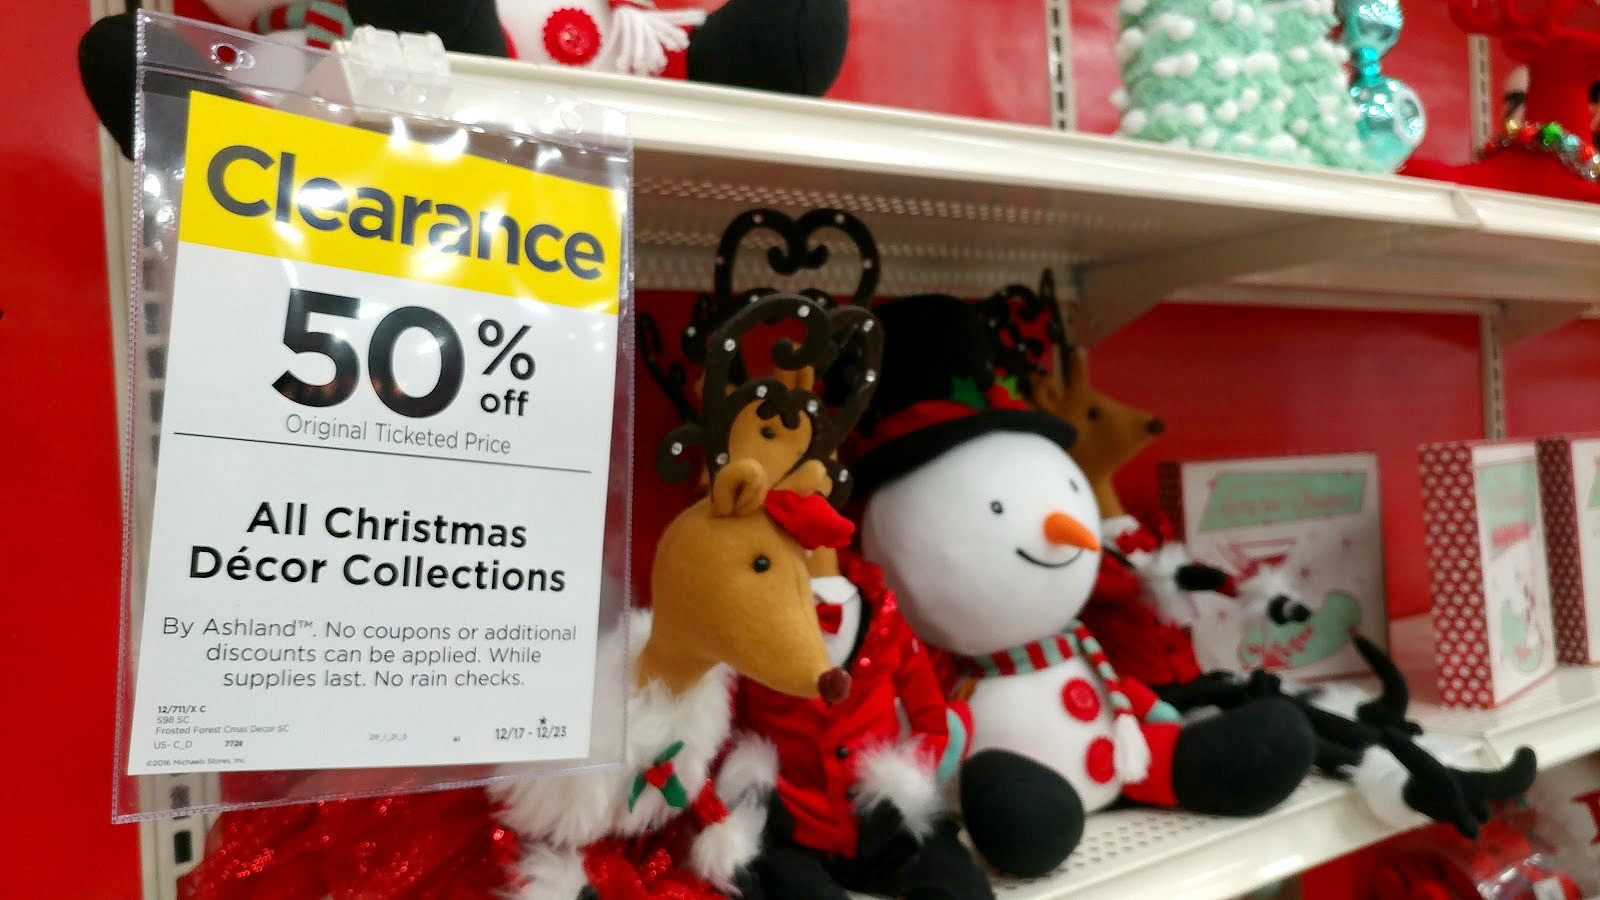 13 Tips to Make the Most of Holiday Clearance Sales - The Krazy Coupon Lady